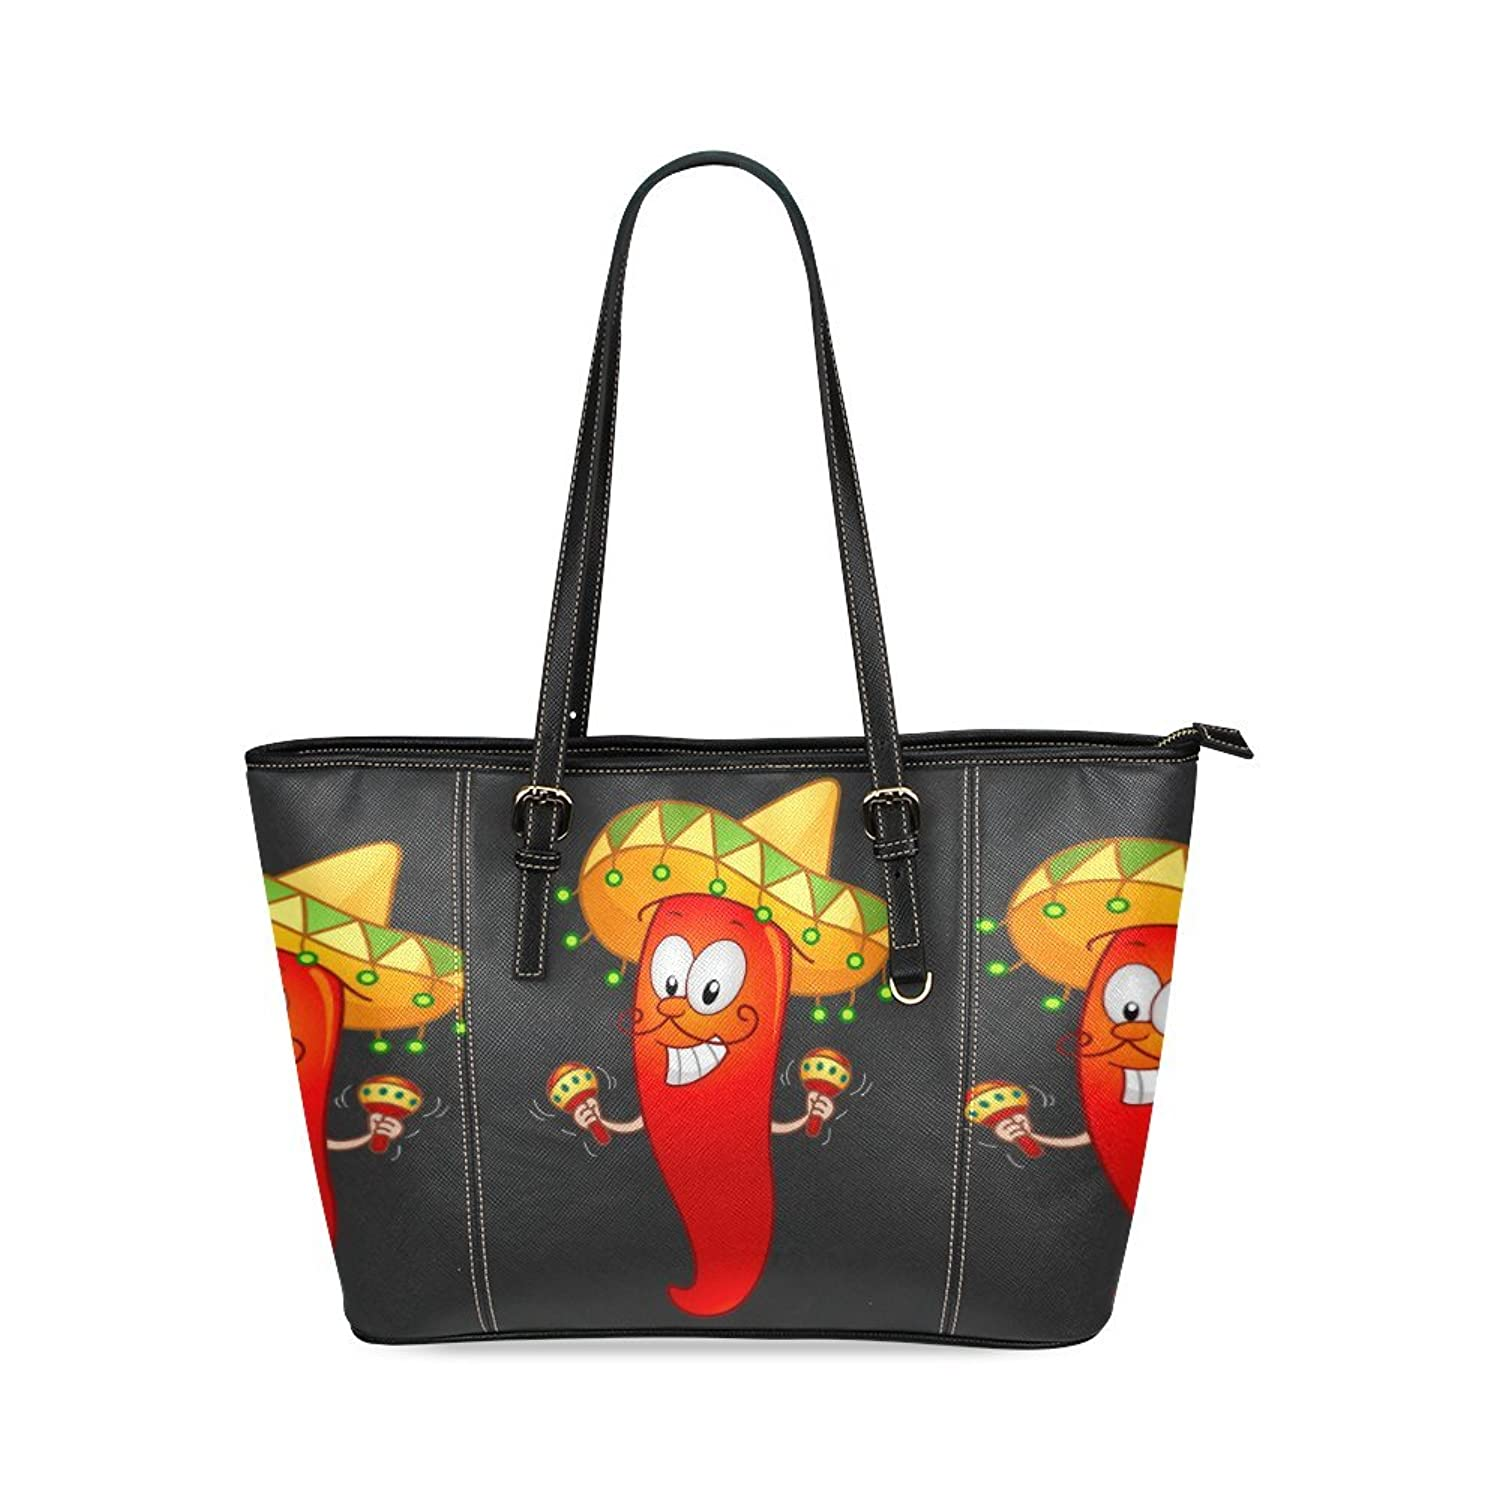 SLsenD Women's Mexican Chili With Maracas Leather Tote Bag Shoulder Bags